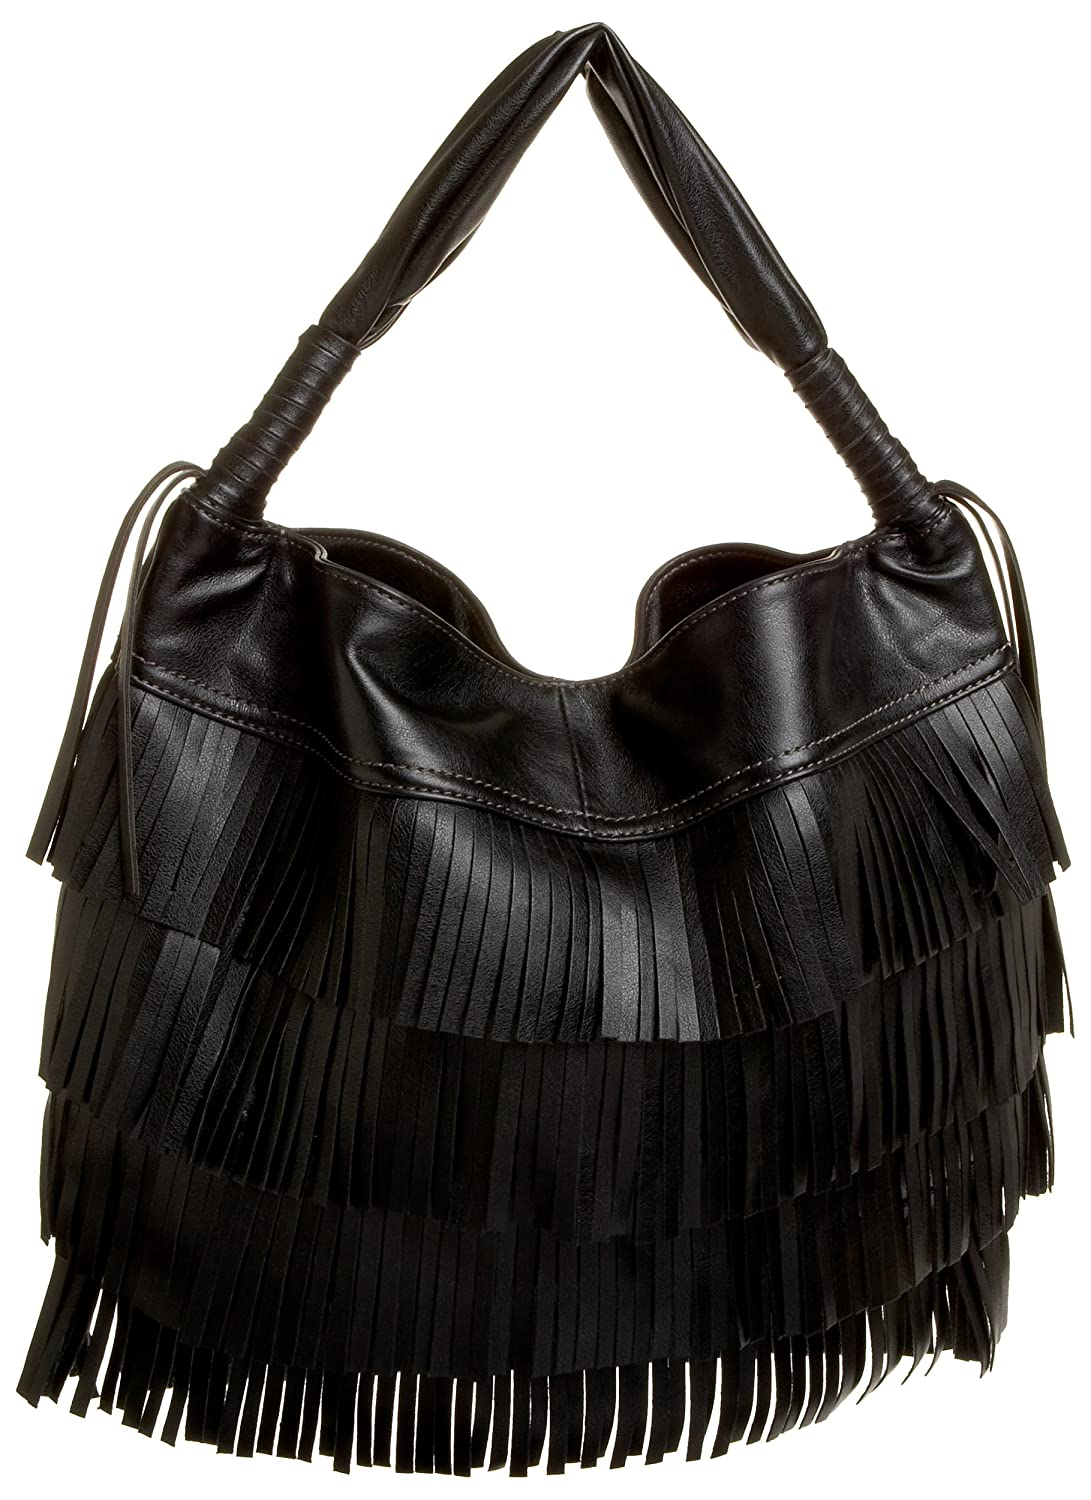 Melie Bianco Fringe Hobo - Free Overnight Shipping & Return Shipping: Endless.com :  fringed return accessories hobo